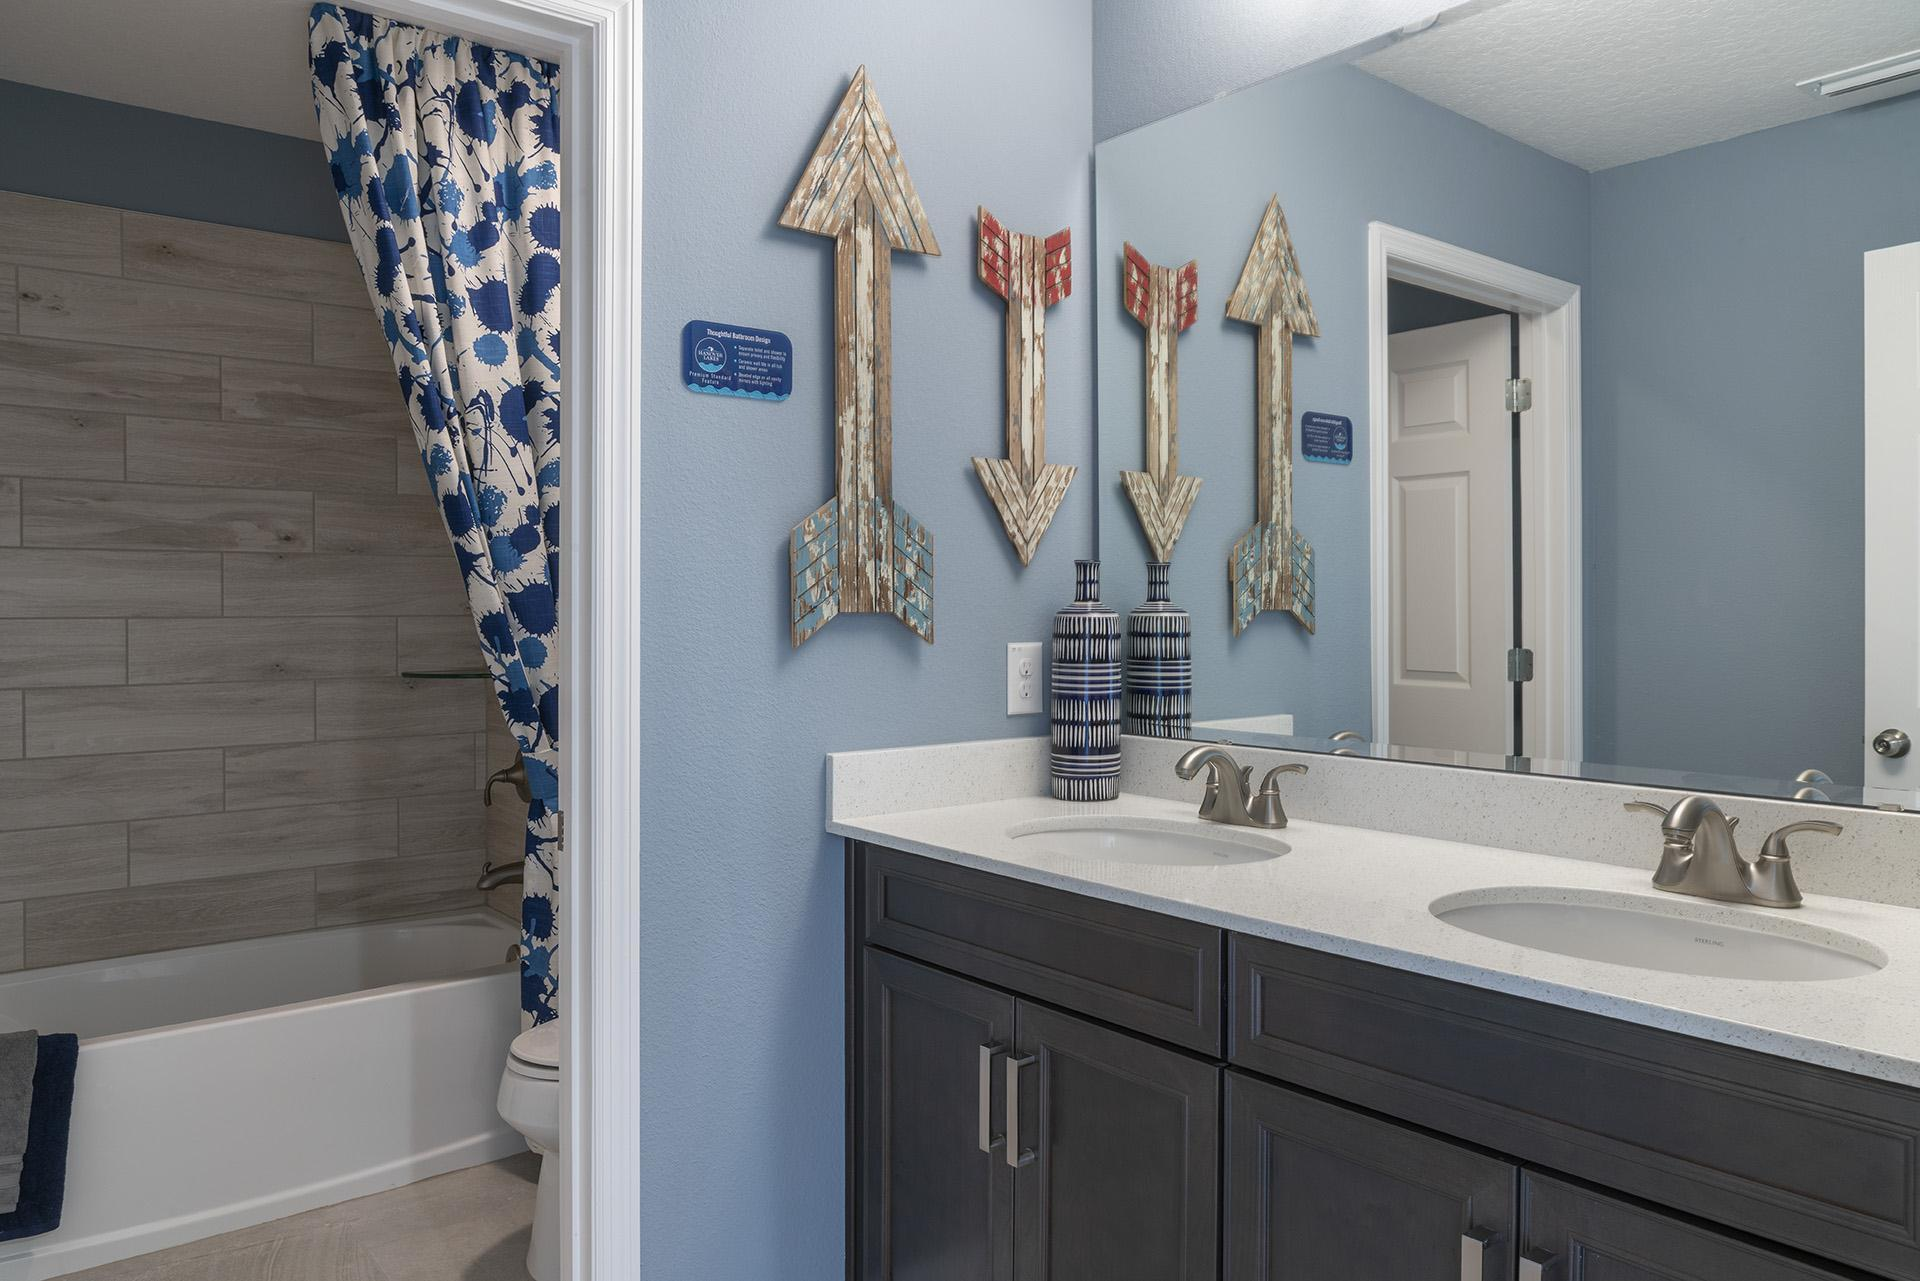 Bathroom featured in the Osceola Premier By Hanover Family Builders in Orlando, FL